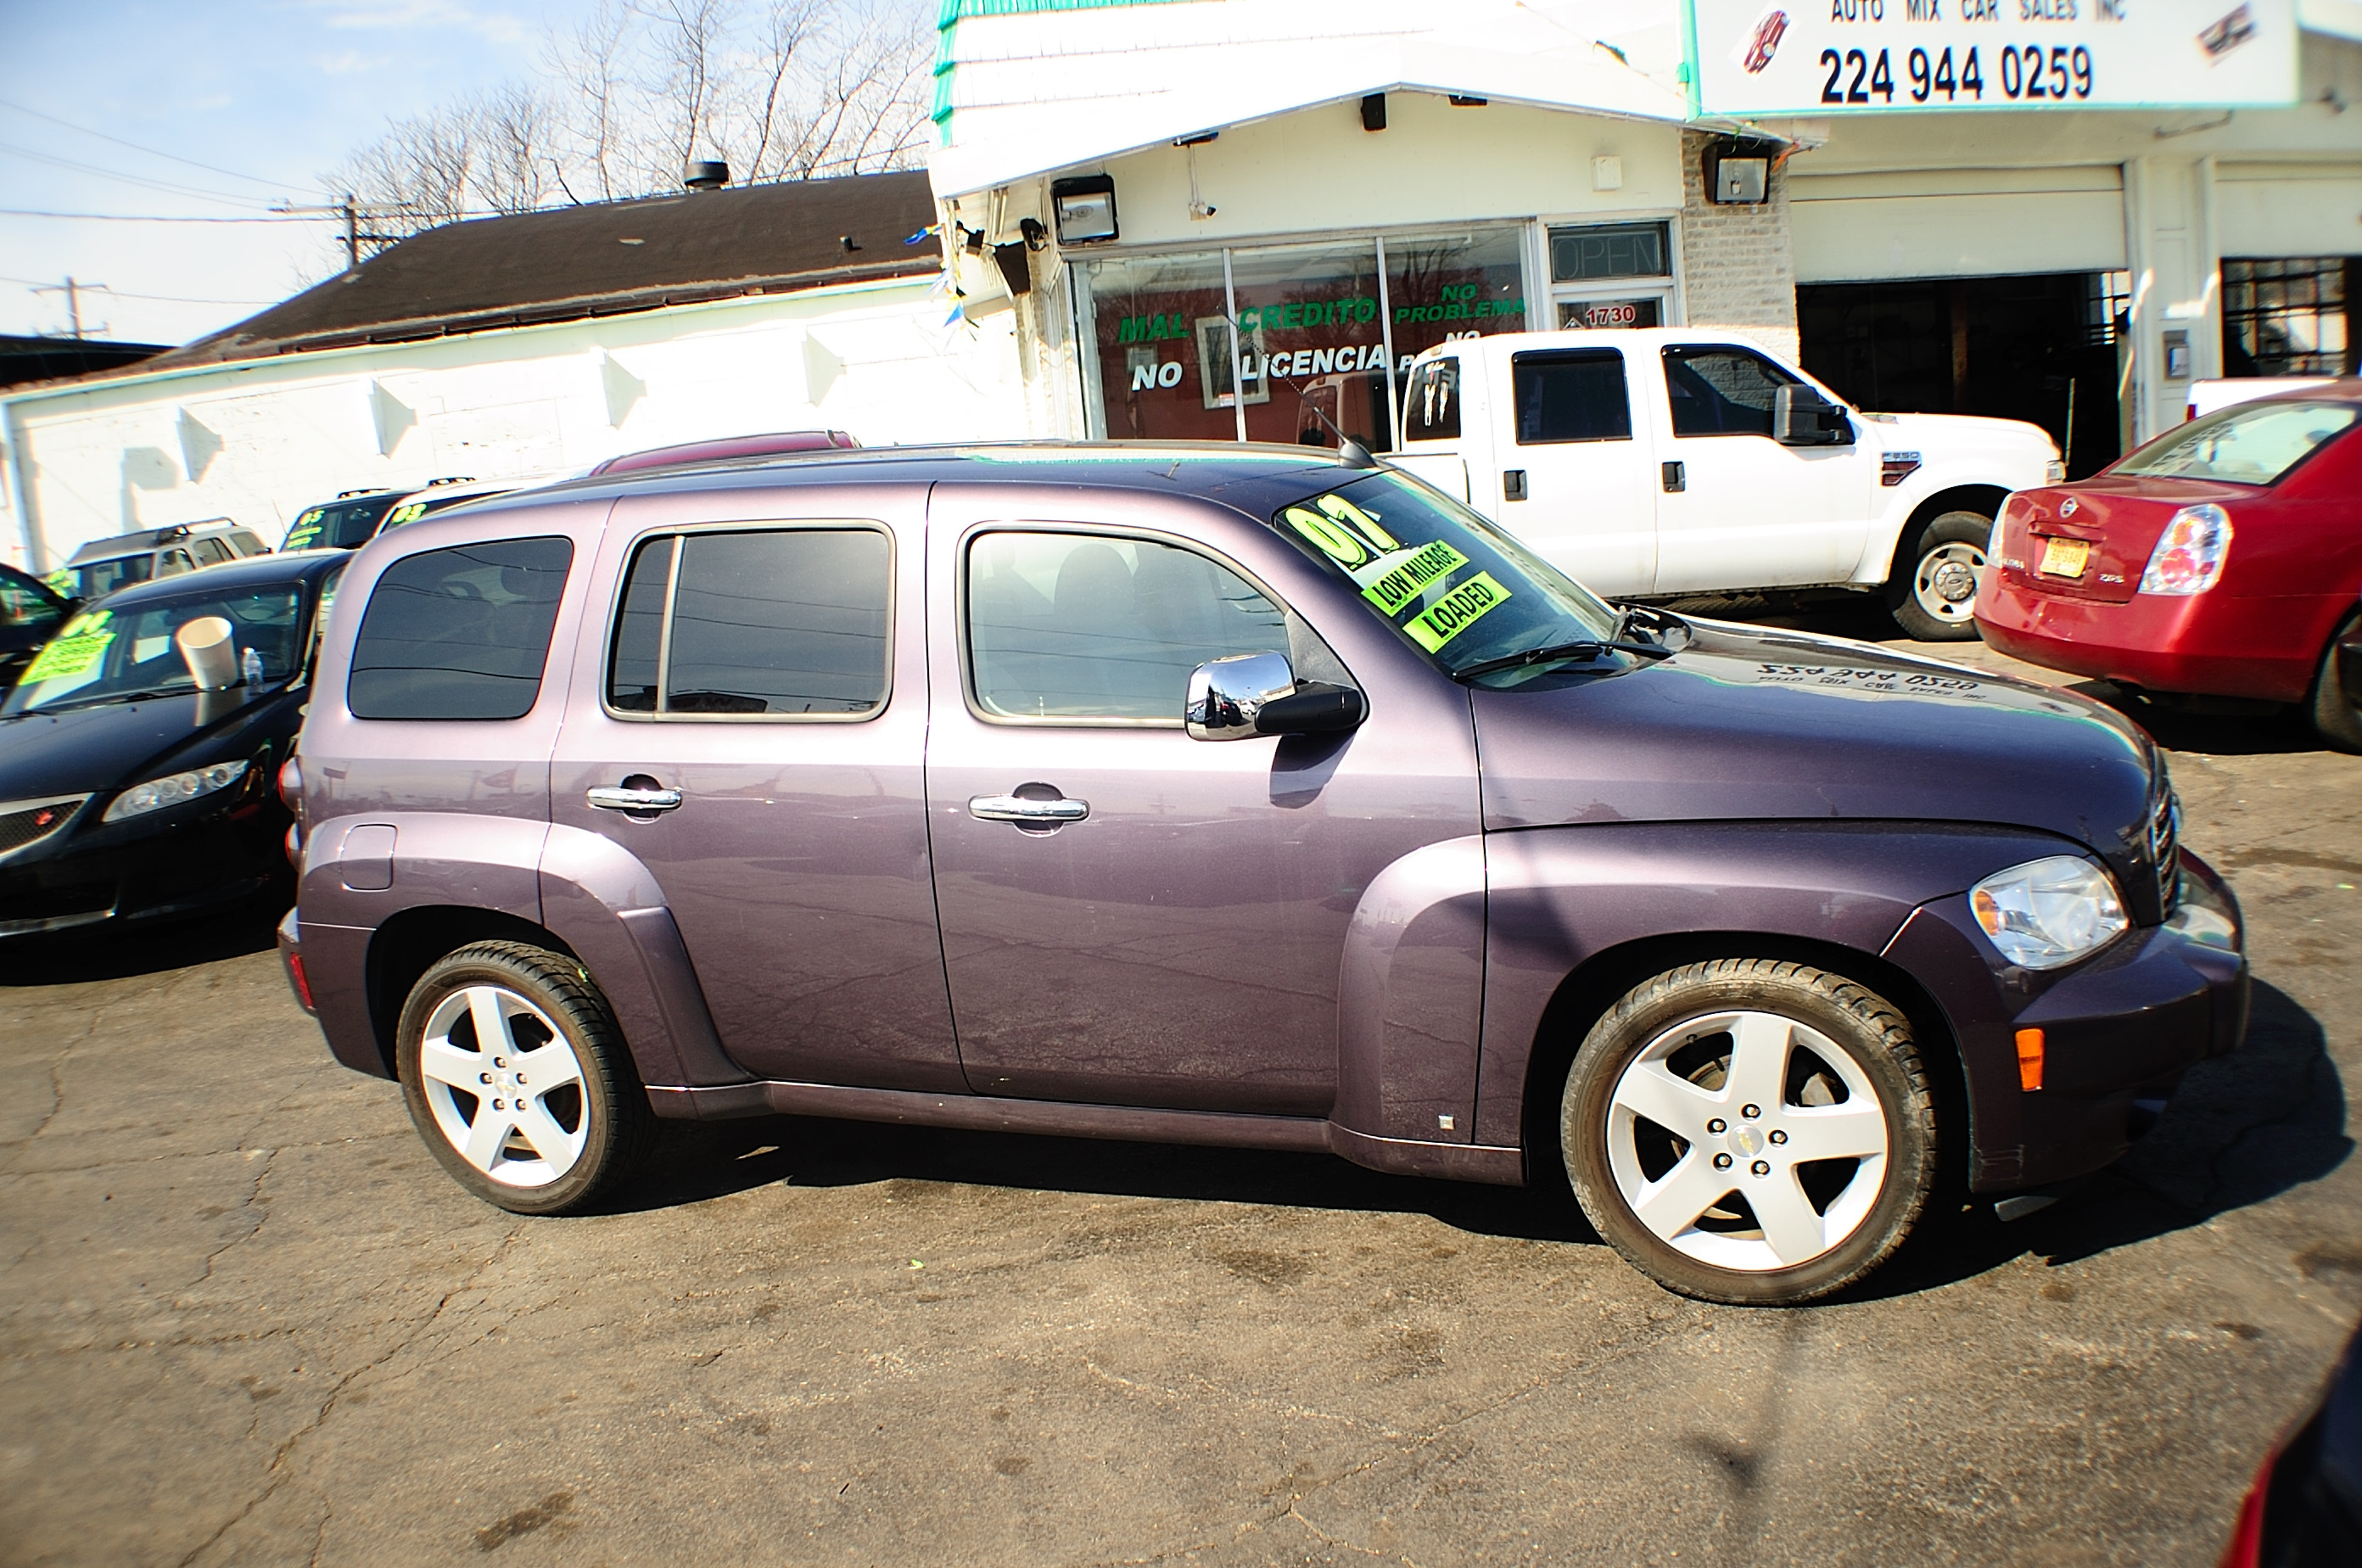 2007 Chevrolet HHR LT 4Dr Amethyst Wagon sale used car Bannockburn Barrington Beach Park